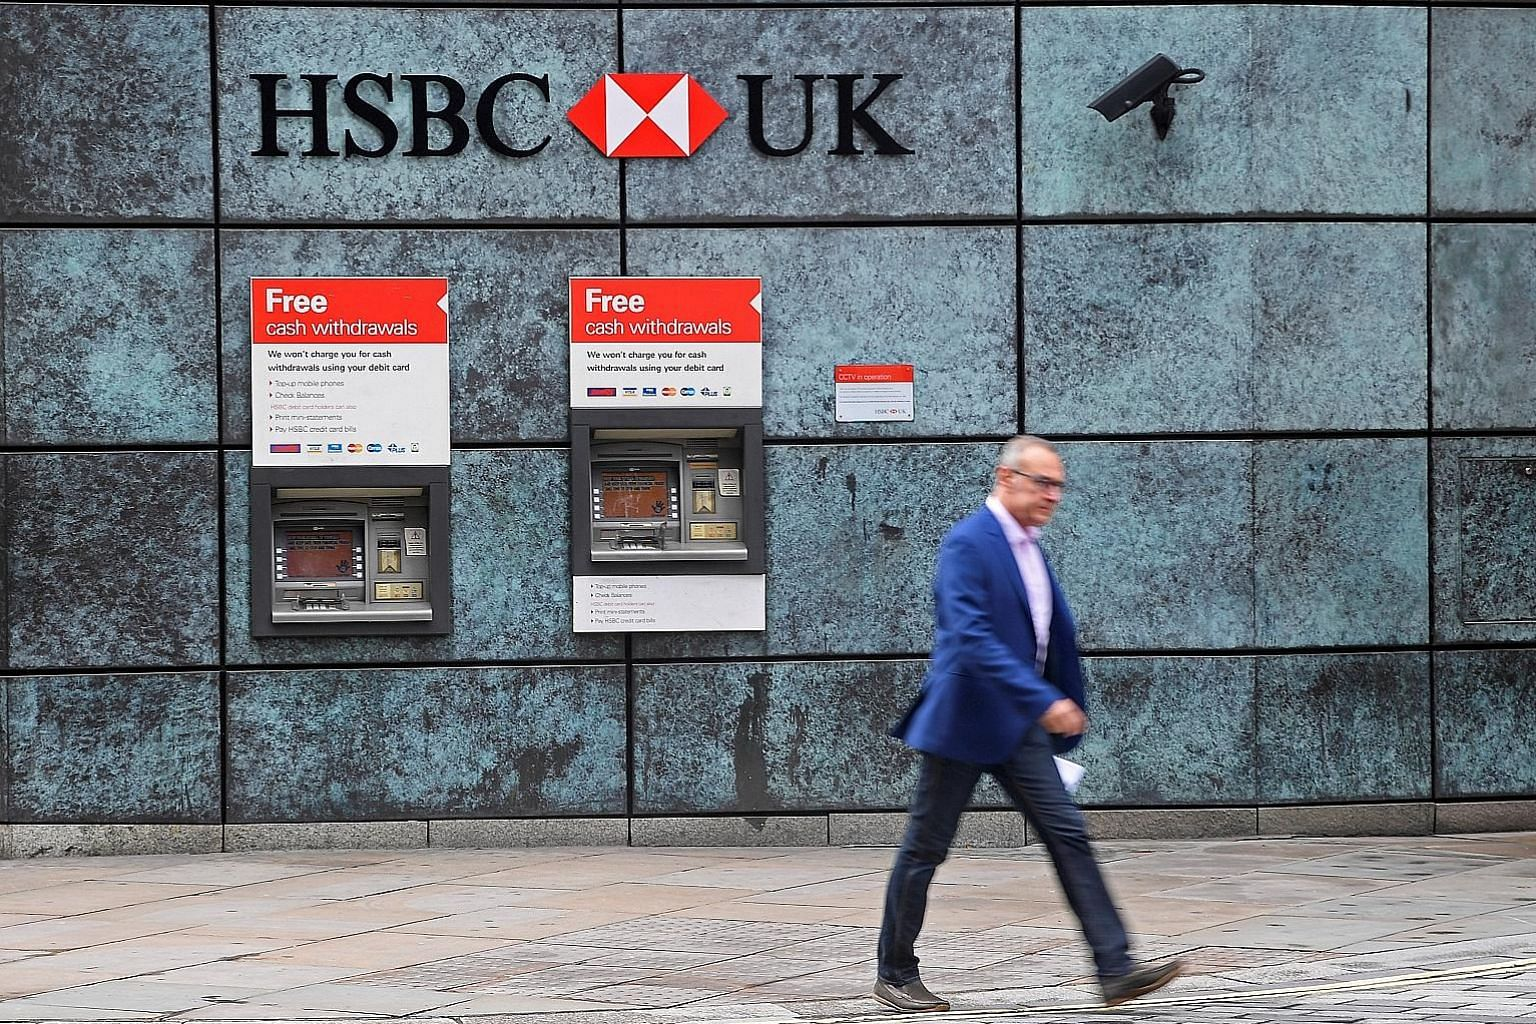 HSBC Holdings thwarted a US$500 million (S$691 million) central bank heist when a teller at a suburban branch became suspicious, declined a request to transfer US$2 million, and triggered a review, according to one account.